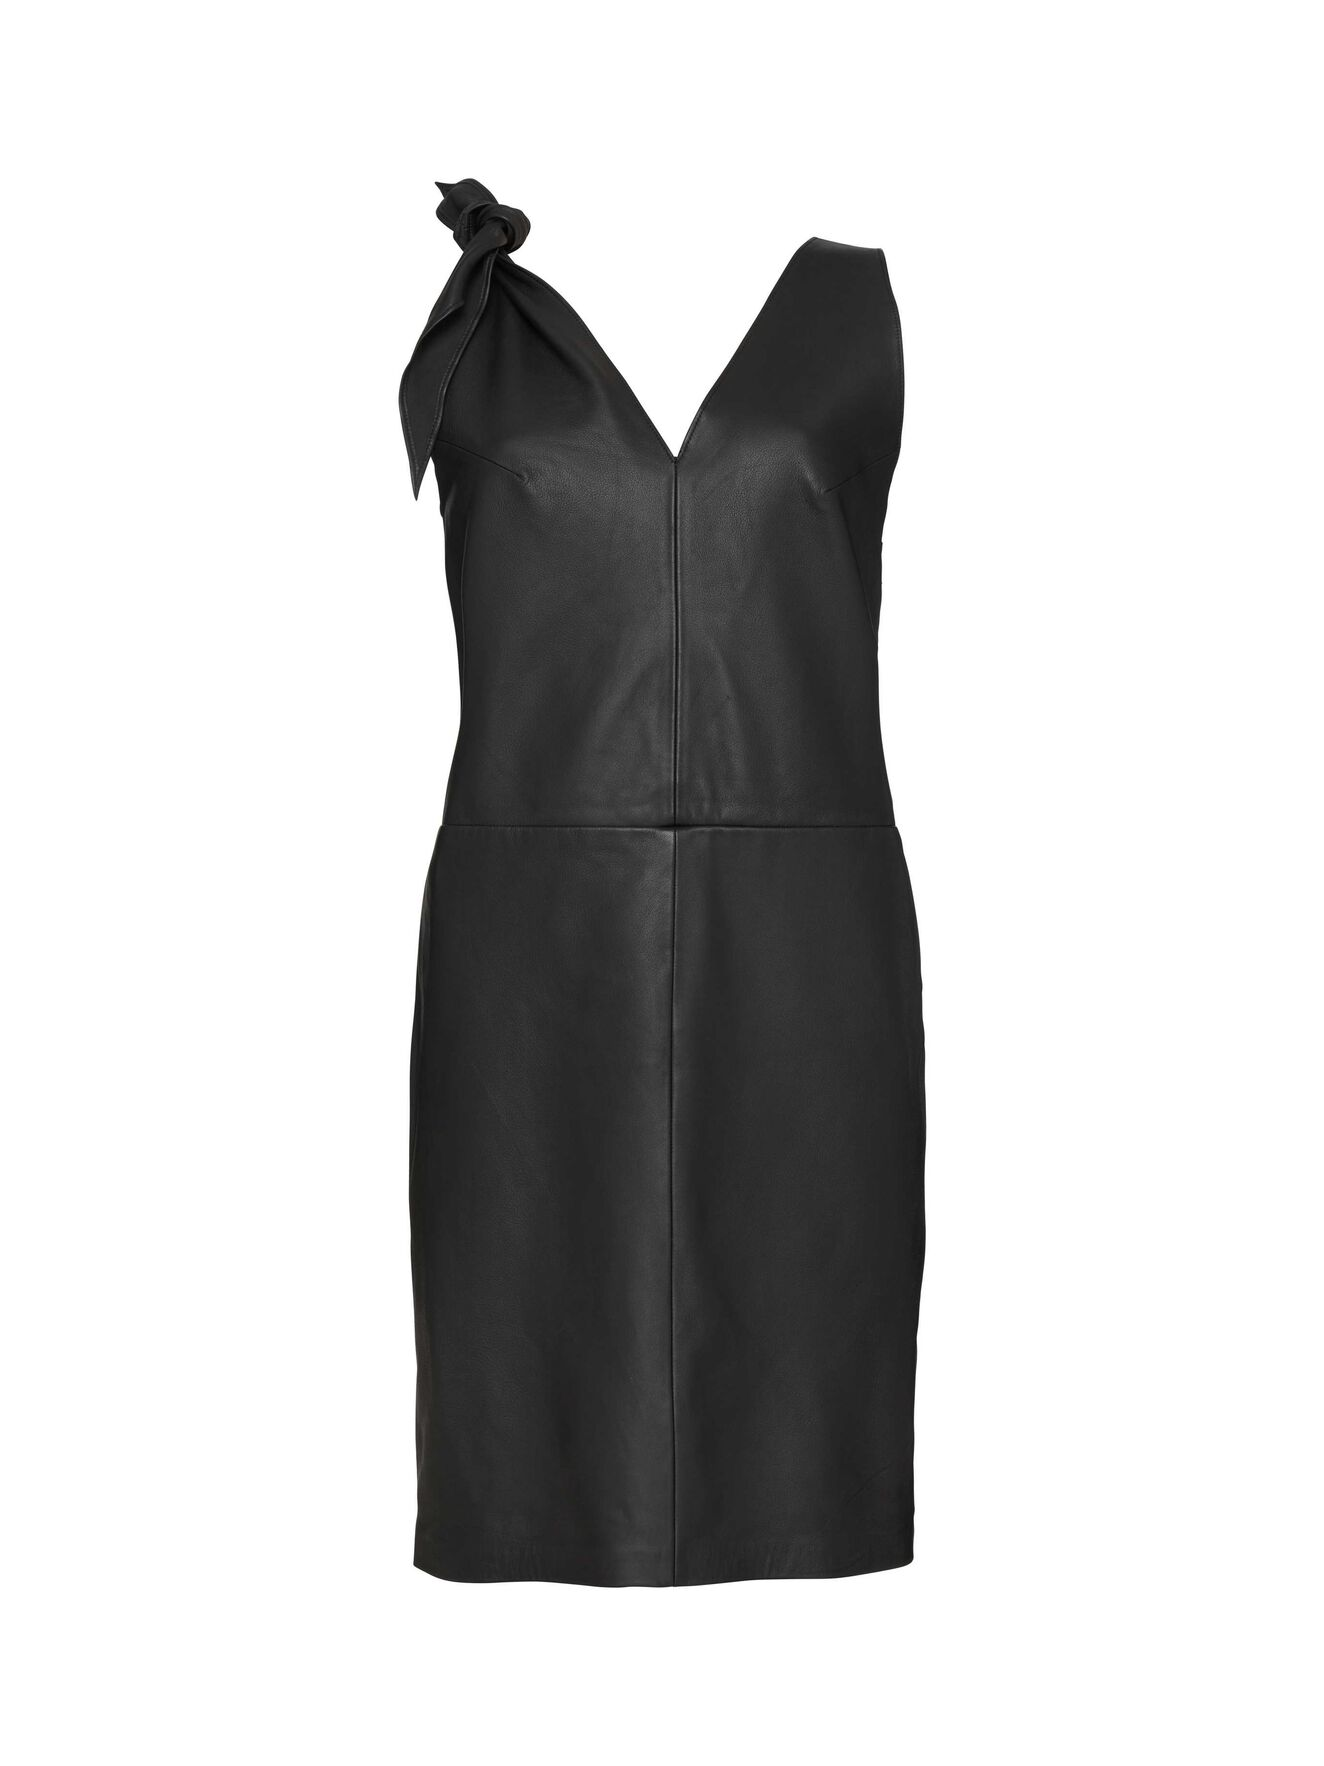 Lybia L Dress in Midnight Black from Tiger of Sweden